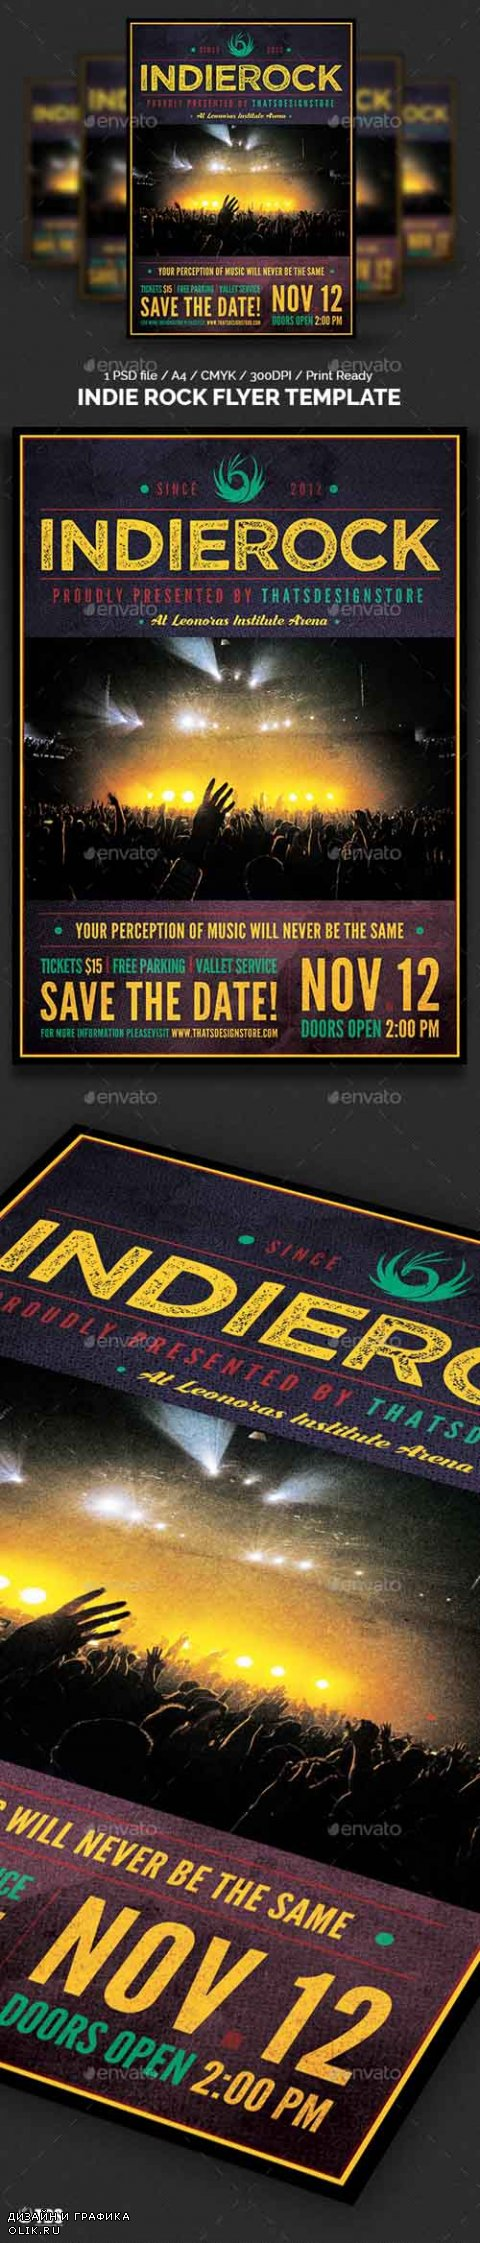 Indie Rock Flyer Template 19130024